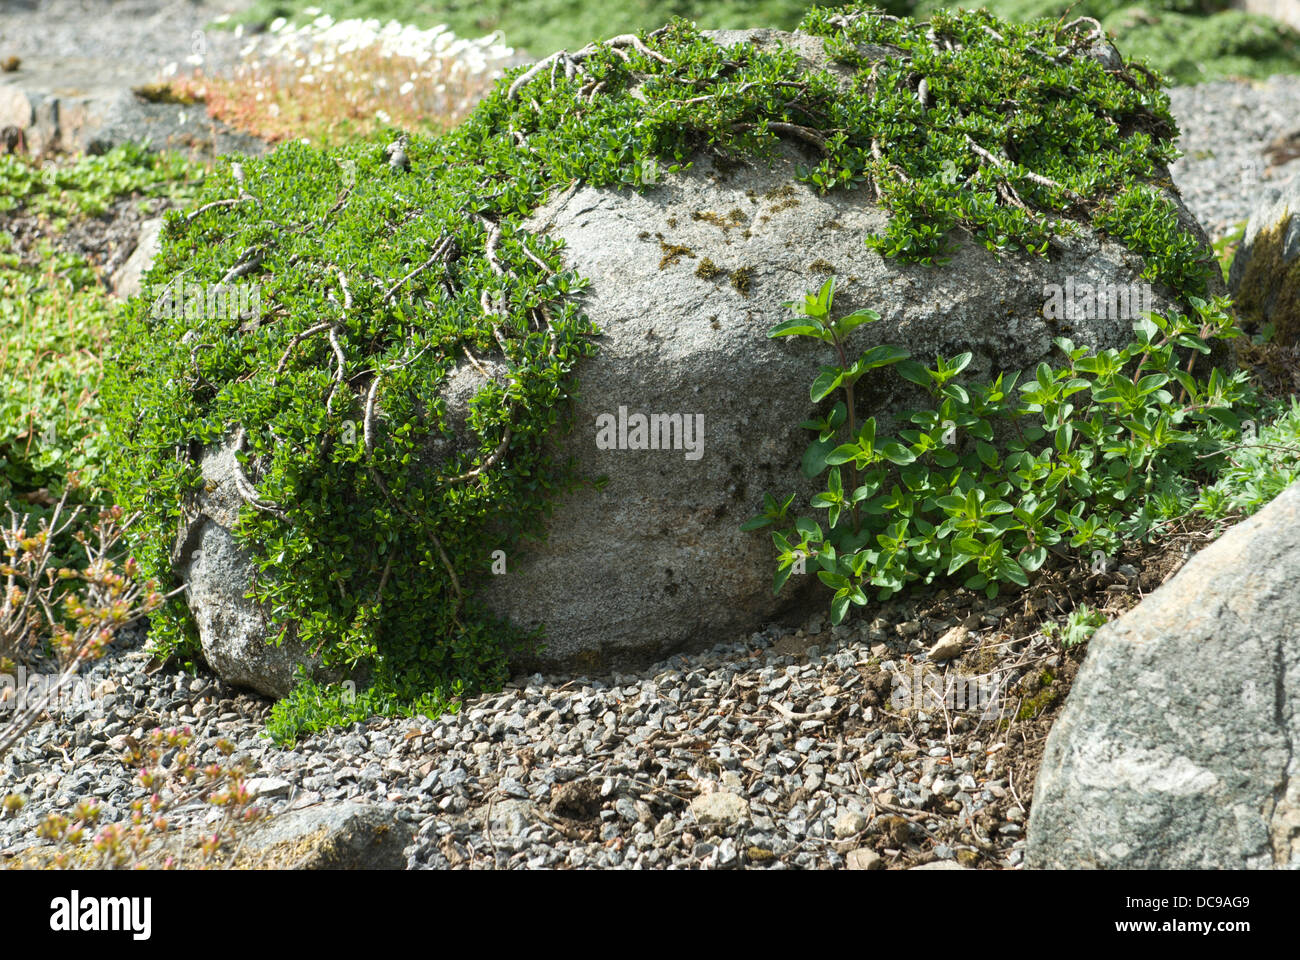 A cotoneaster like plant hugging the contours of small rocks in a stock photo royalty free - Considerations small rock garden ...